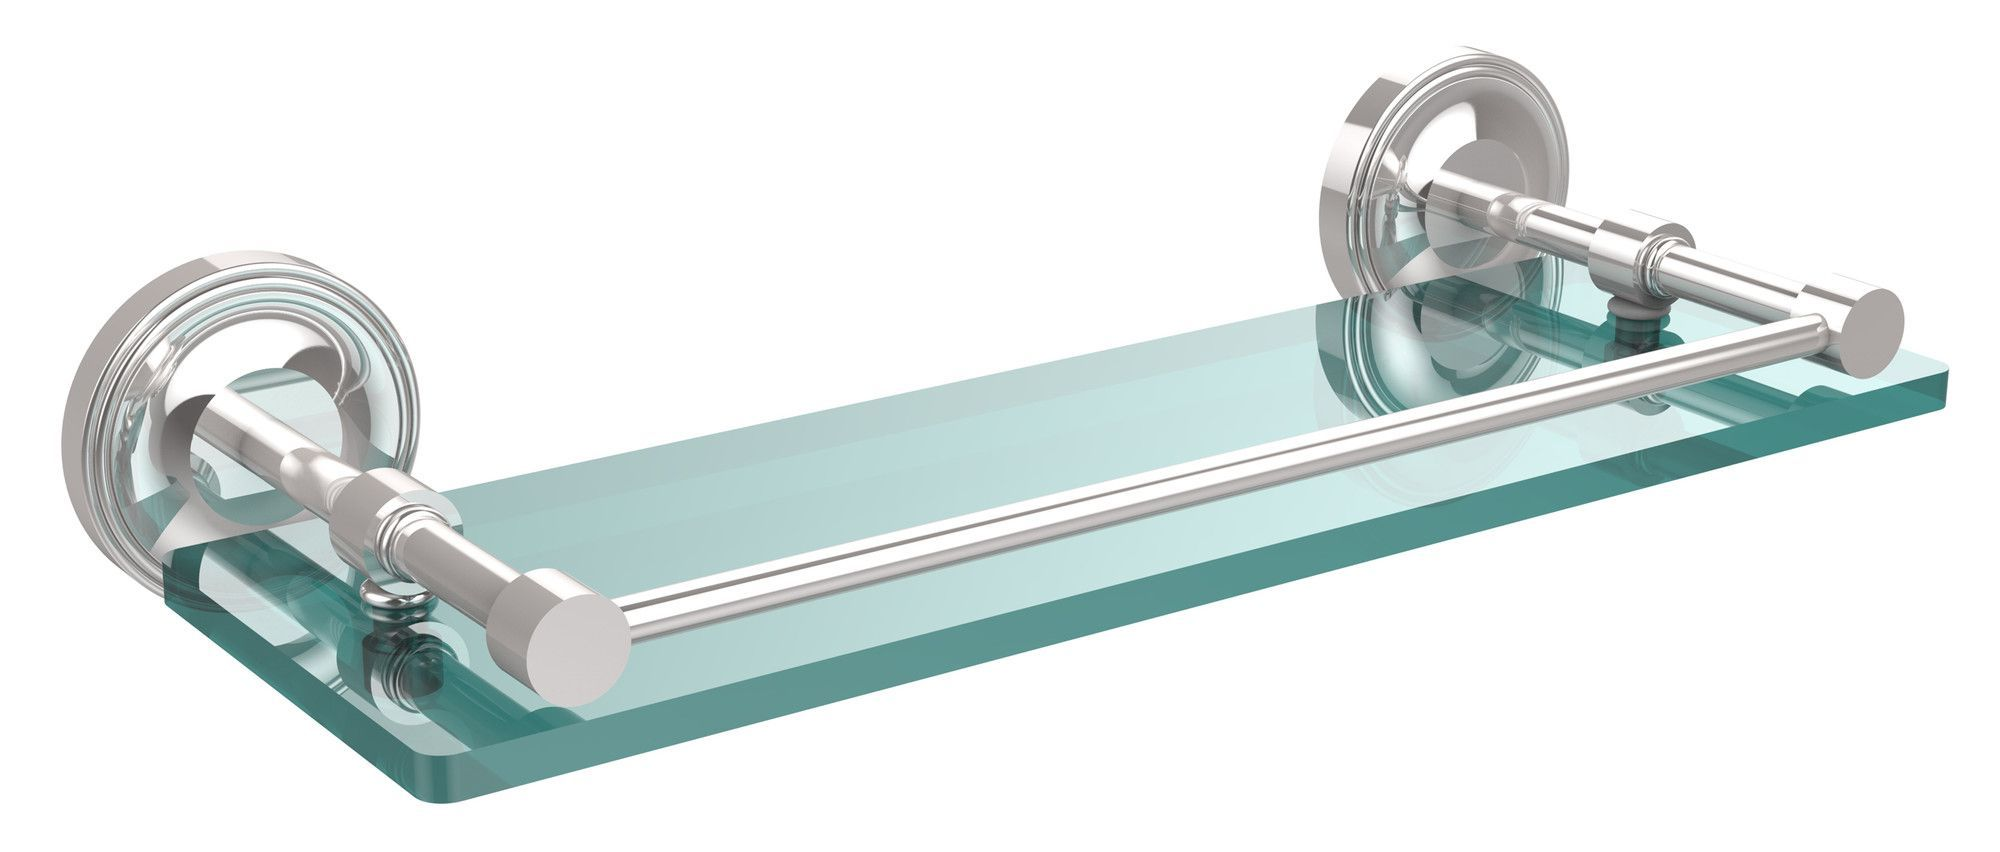 Prestige Regal Wall Shelf | Shelves and Products